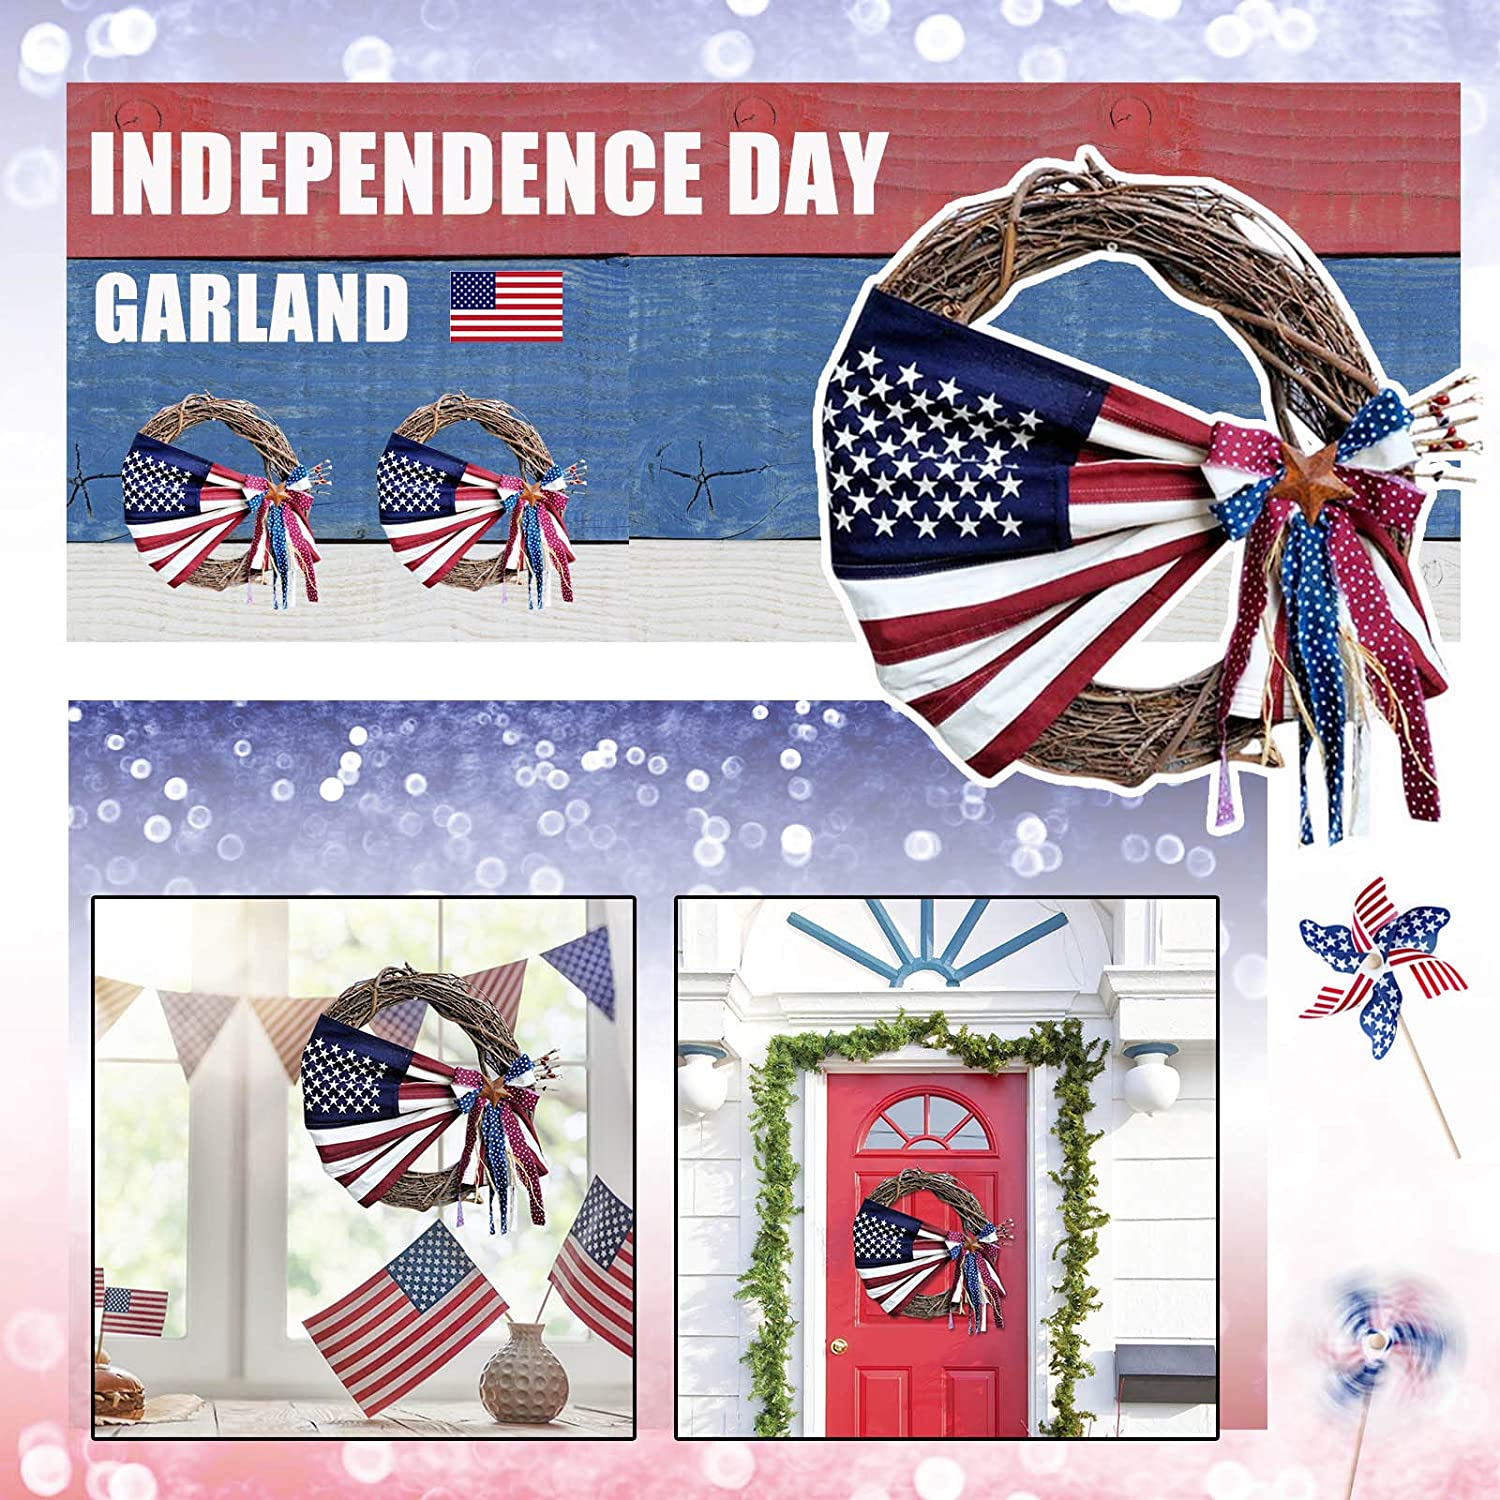 Patriotic Independence Wreaths for Front Door,July 4th Independence Day Wreath,Veterans Day Decor,Handcrafted Hanging Wreaths for Home Wall Decor Front Door Decorations Outside